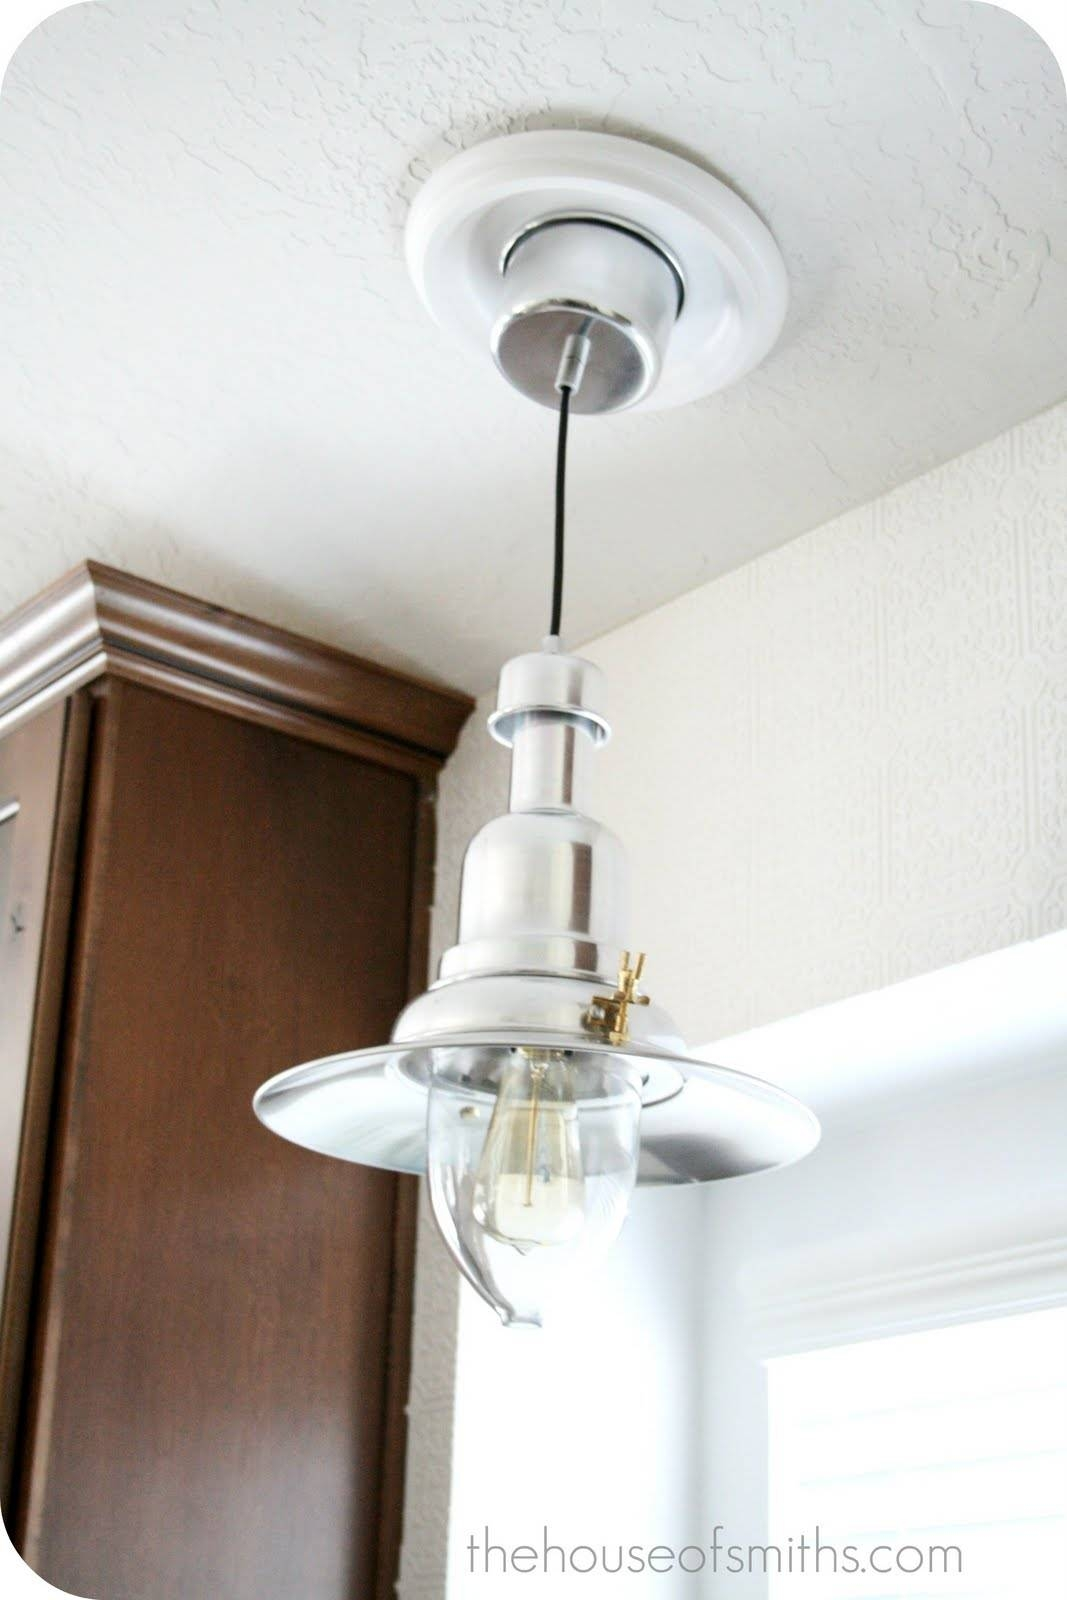 New Kitchen Lighting - Converting A Can Light With A Recessed with regard to Ikea Pendant Light Kits (Image 10 of 15)